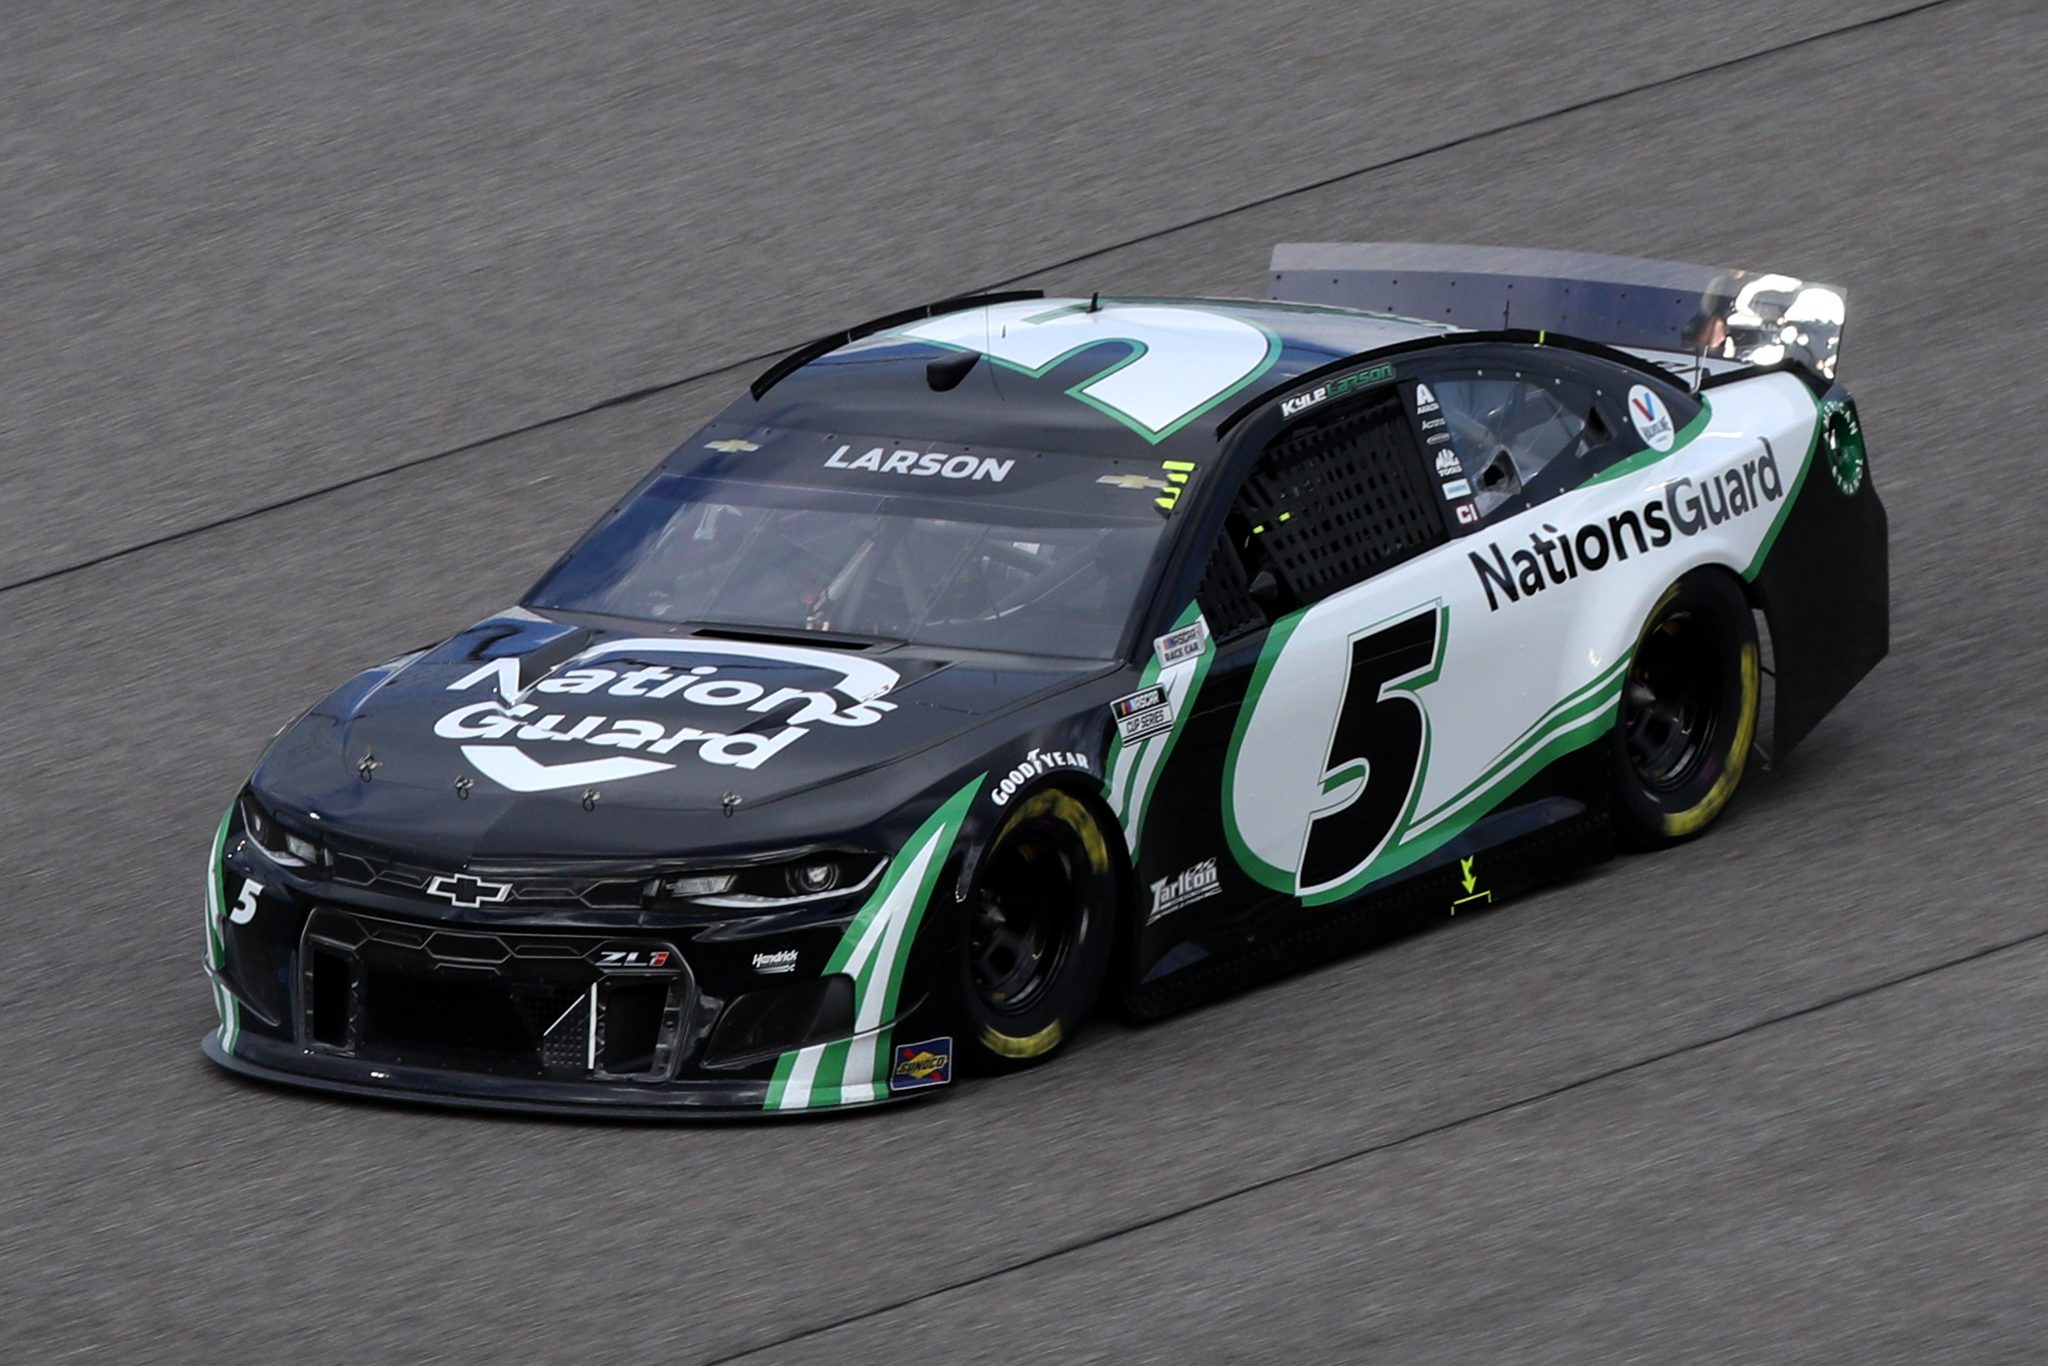 HOMESTEAD, FLORIDA - FEBRUARY 28: Kyle Larson, driver of the #5 NationsGuard Chevrolet, drives during the NASCAR Cup Series Dixie Vodka 400 at Homestead-Miami Speedway on February 28, 2021 in Homestead, Florida. (Photo by Sean Gardner/Getty Images) | Getty Images